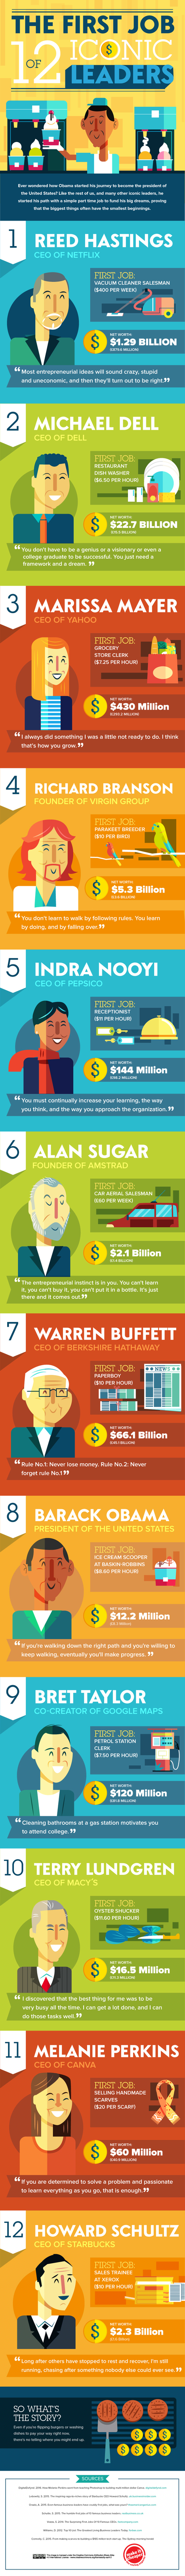 The first job of 12 iconic leaders #infographic | MarketingHits | Scoop.it